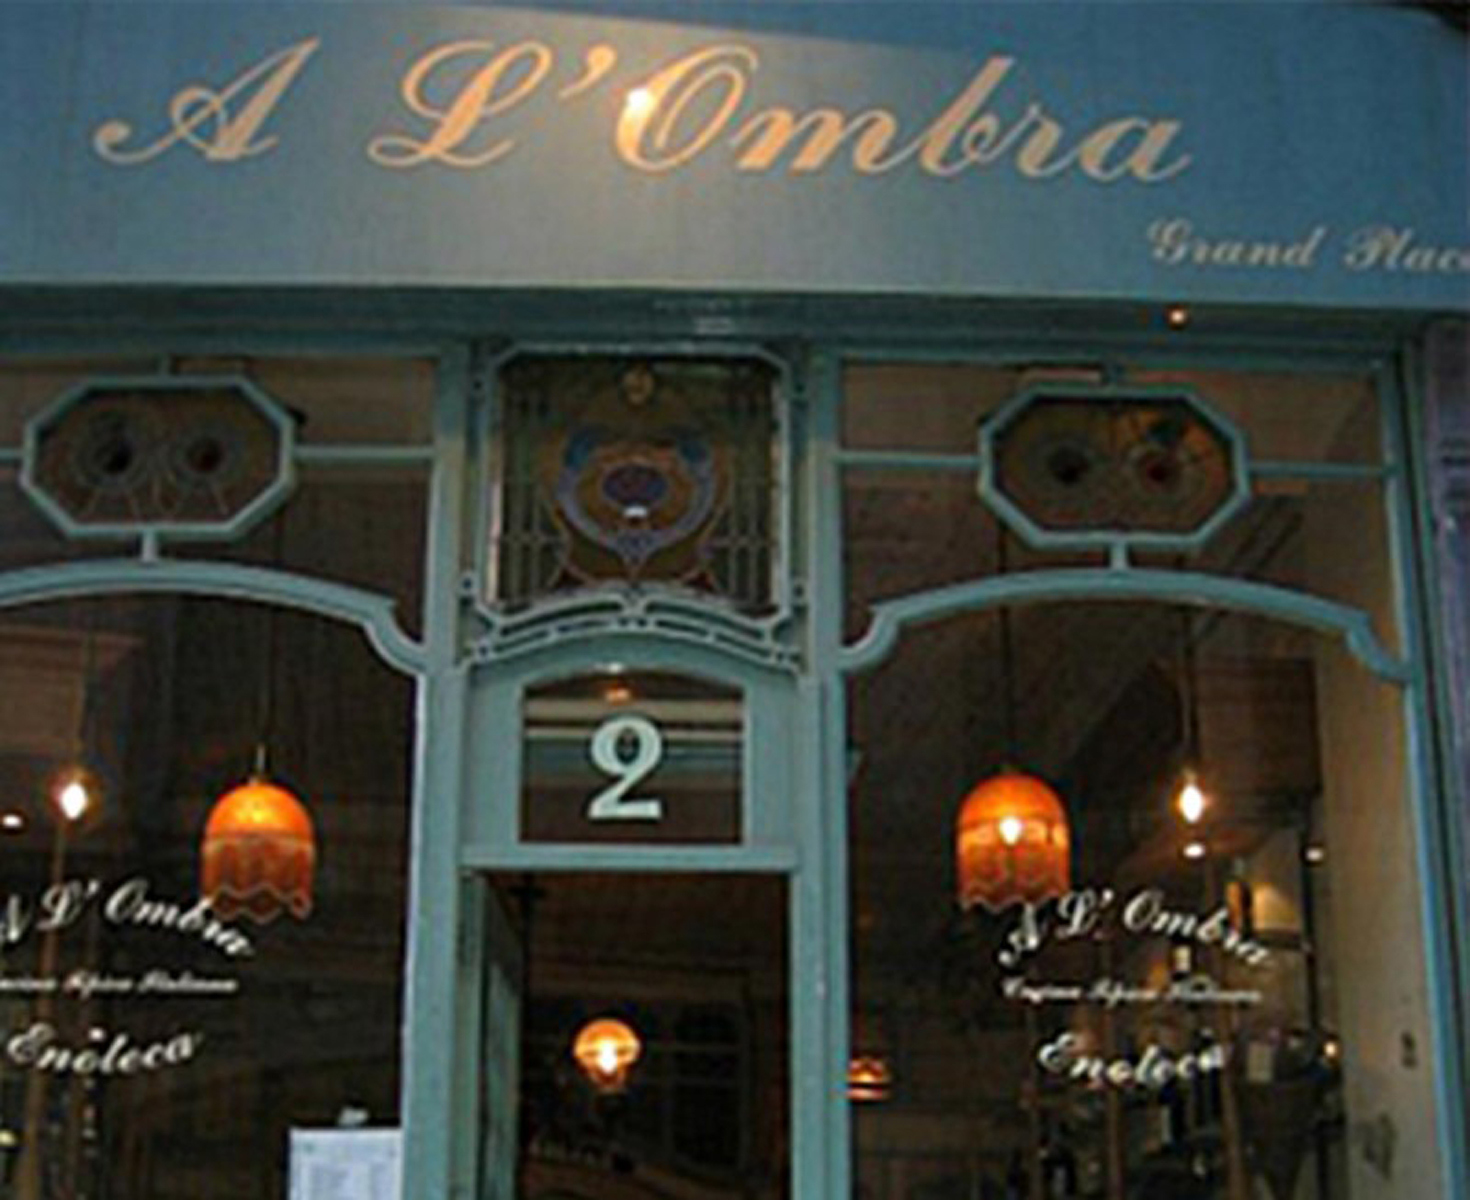 436/Photos/City_Guide/restaurant-osteria-a-l-ombra-9-hotel-central-bruxelles.jpg